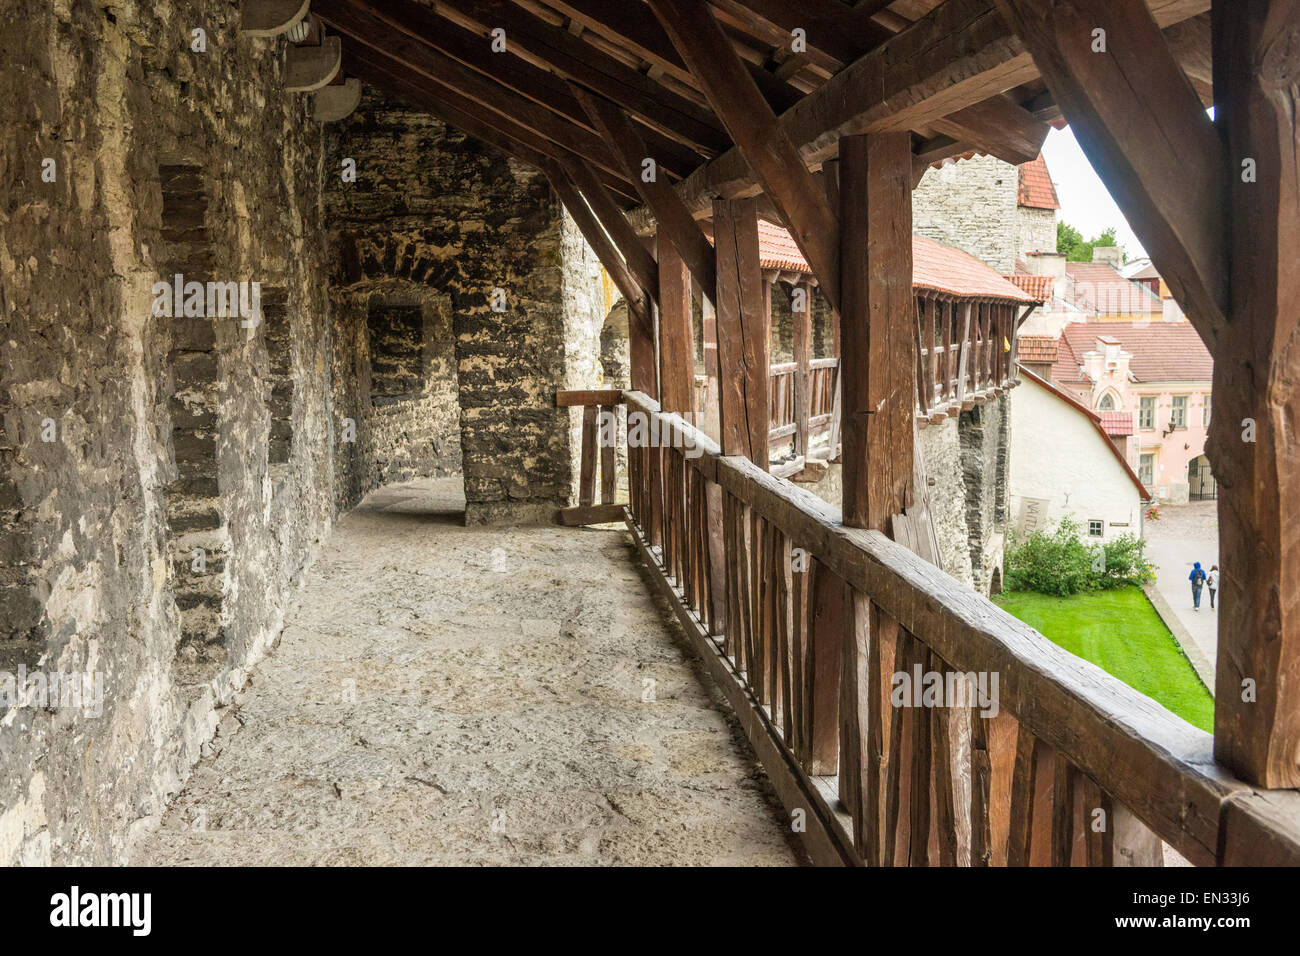 Walkway on town wall near the Monastery Gate, old town of Tallinn, Estonia. Stock Photo